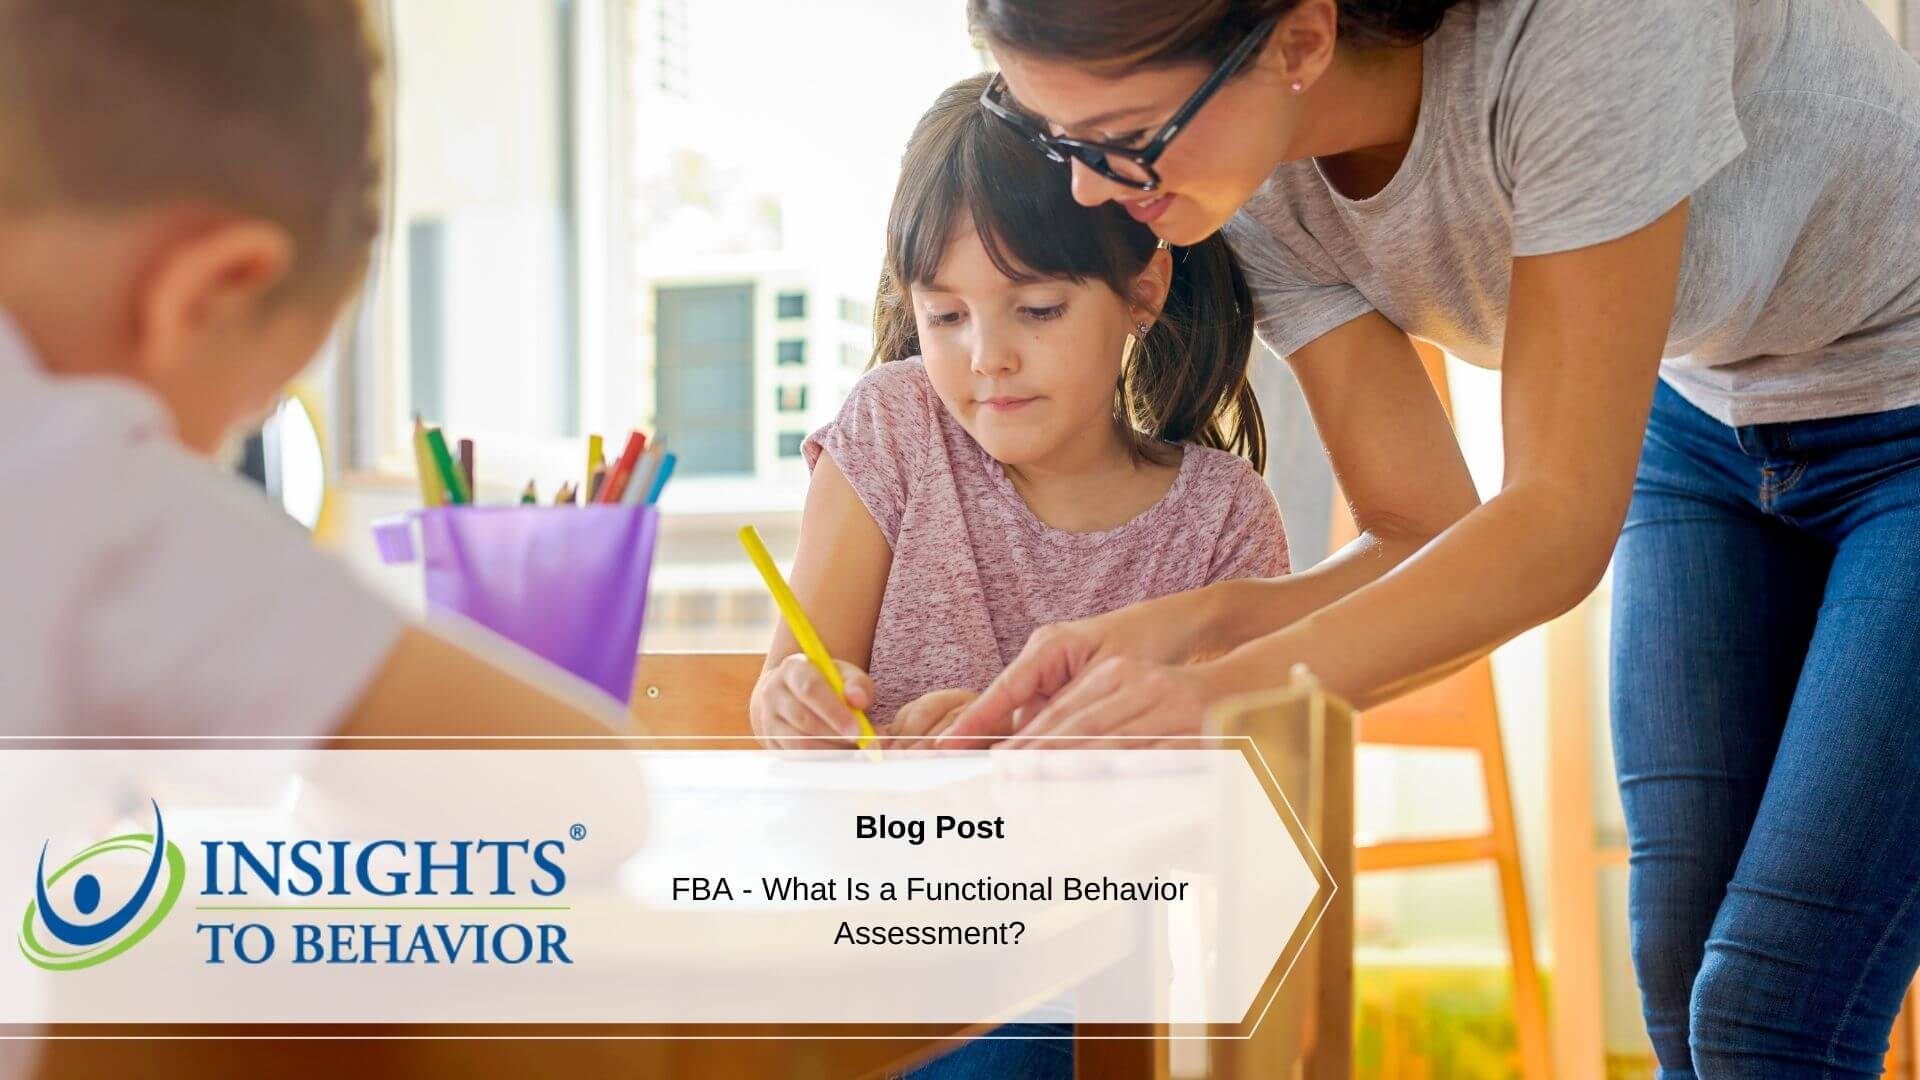 Post title: What is a functional behavior assessment?